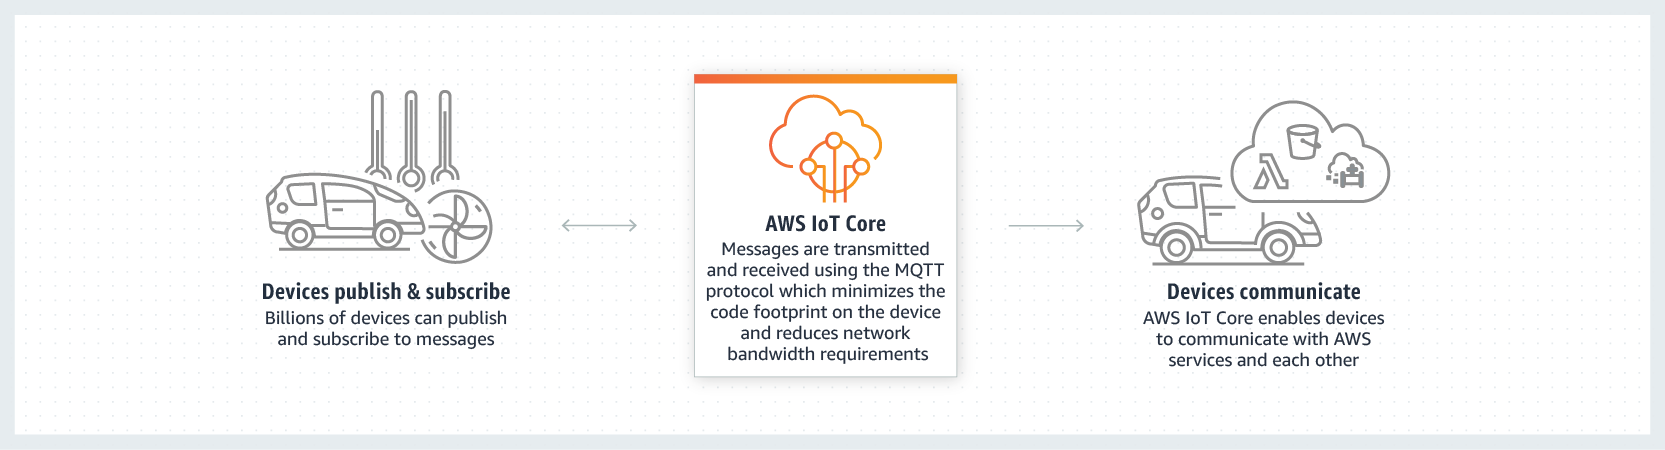 AWS IoT Core - Connect and Manage